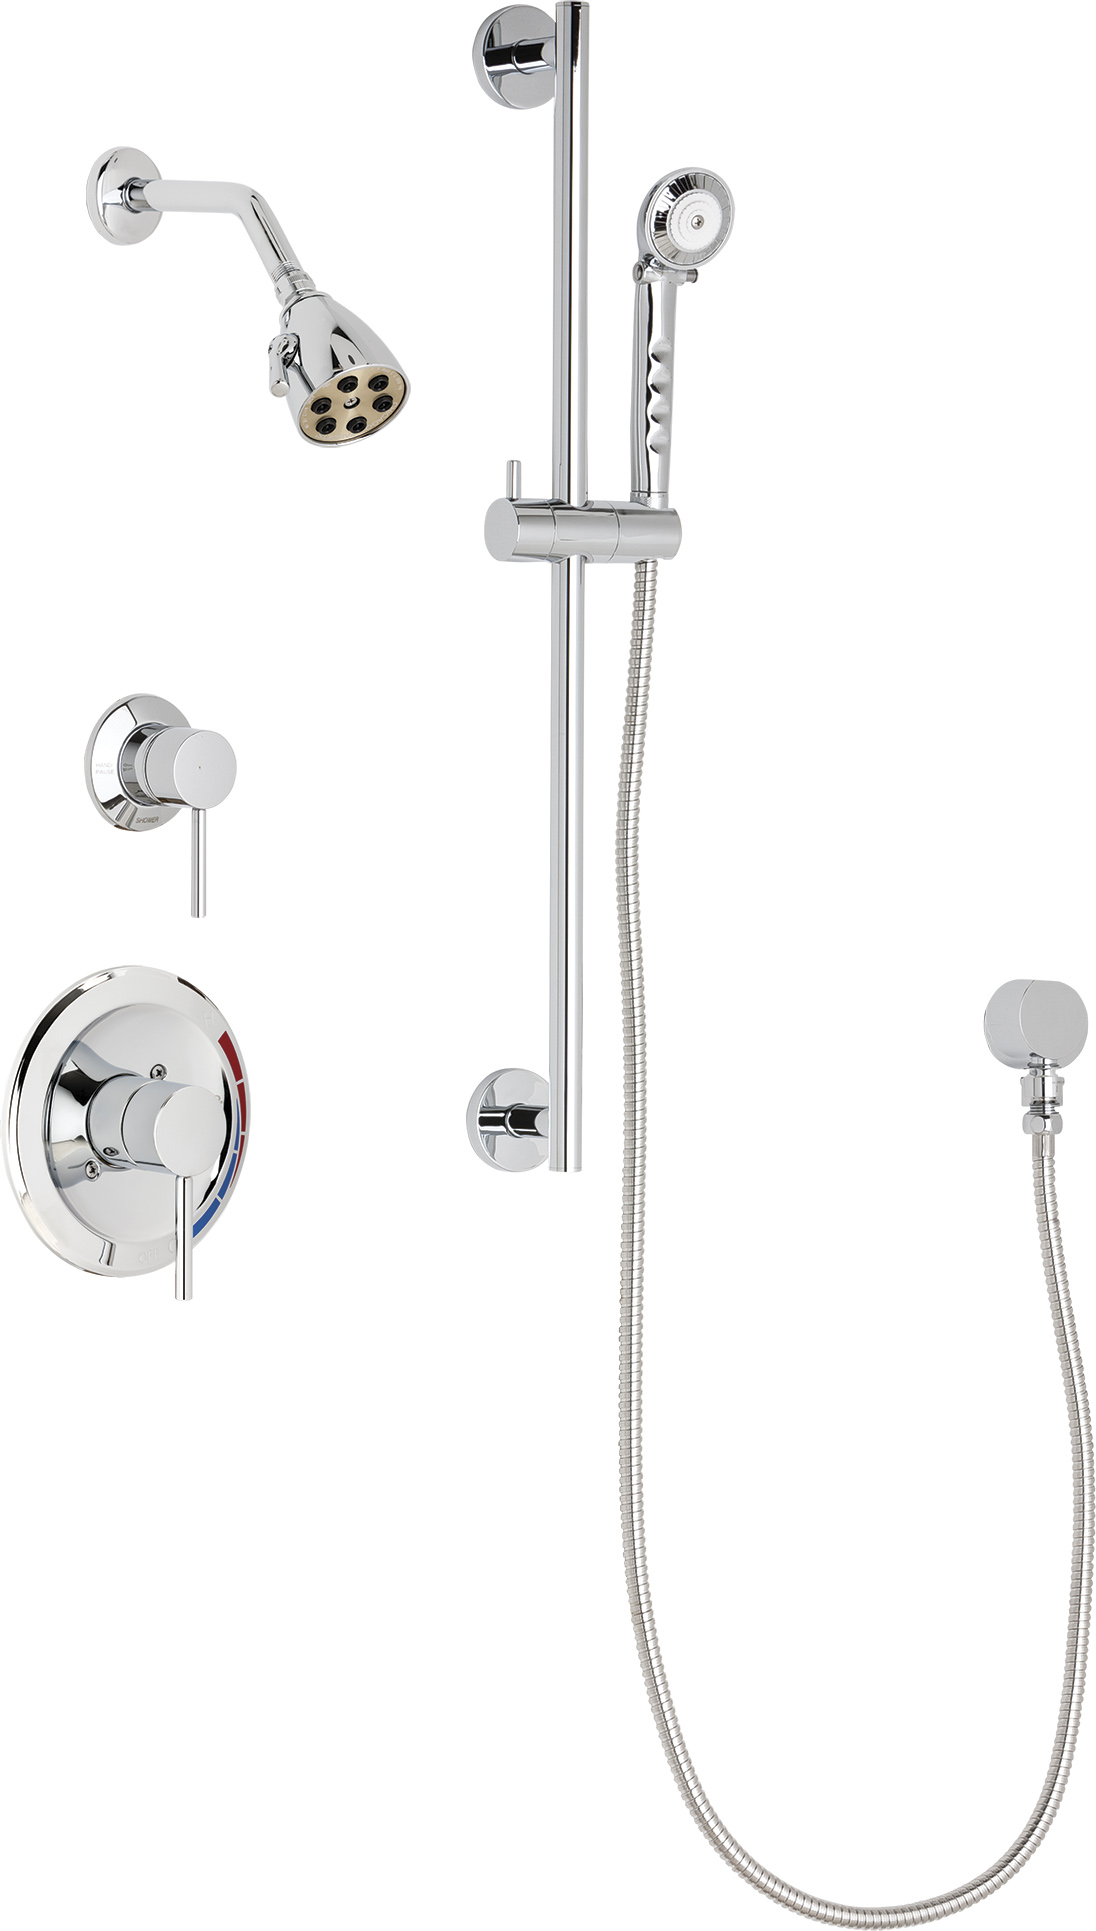 Pressure Balancing Tub And Shower System With Shower Head Hand Spray And Diverter Tub Spout Options